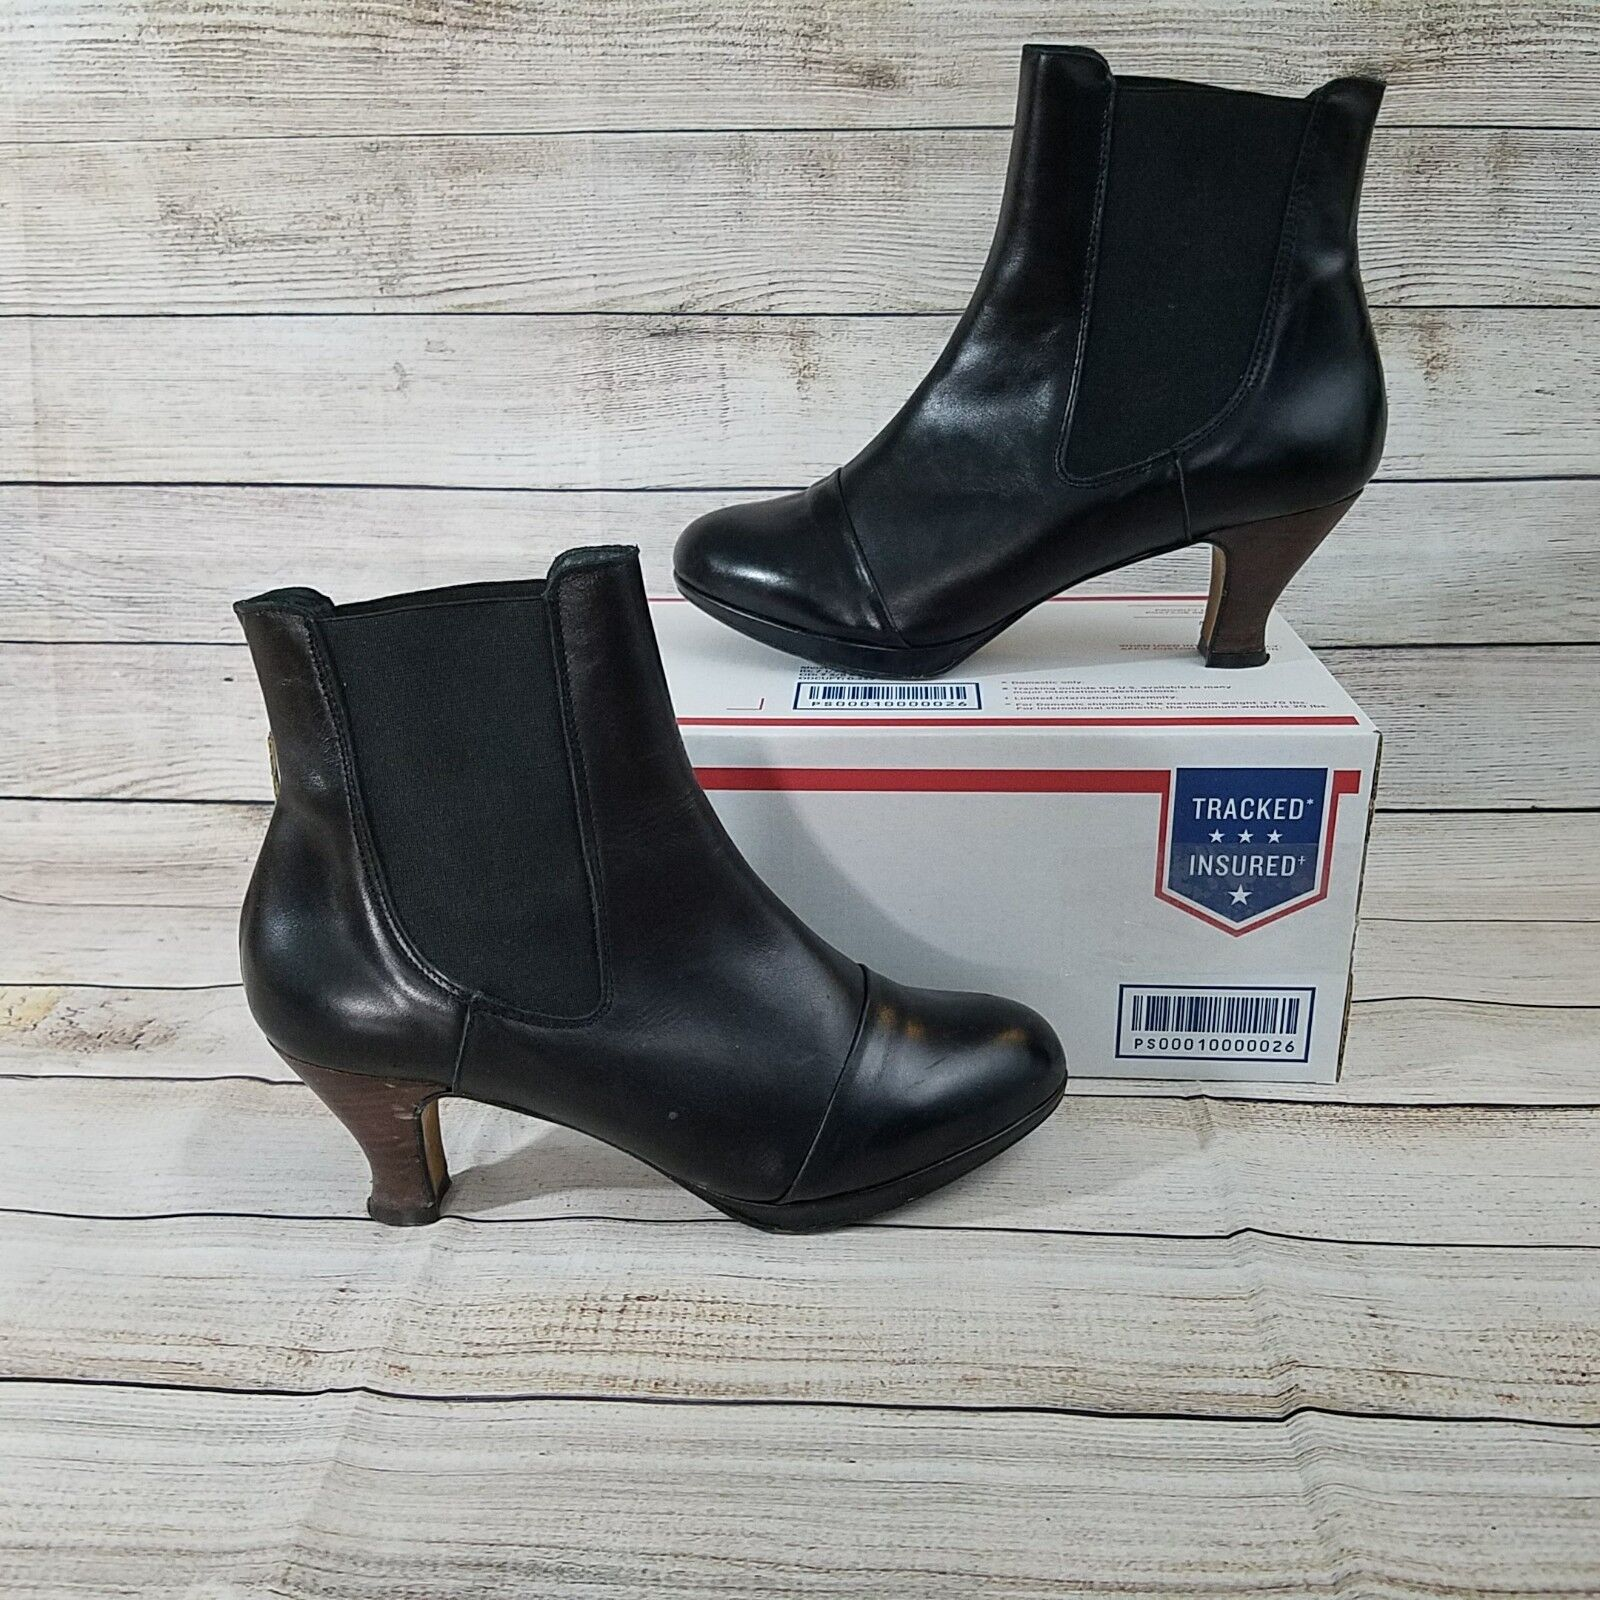 TOPSHOP Women's Black Leather Ankle Boot Size 40 Boots Made In Spain